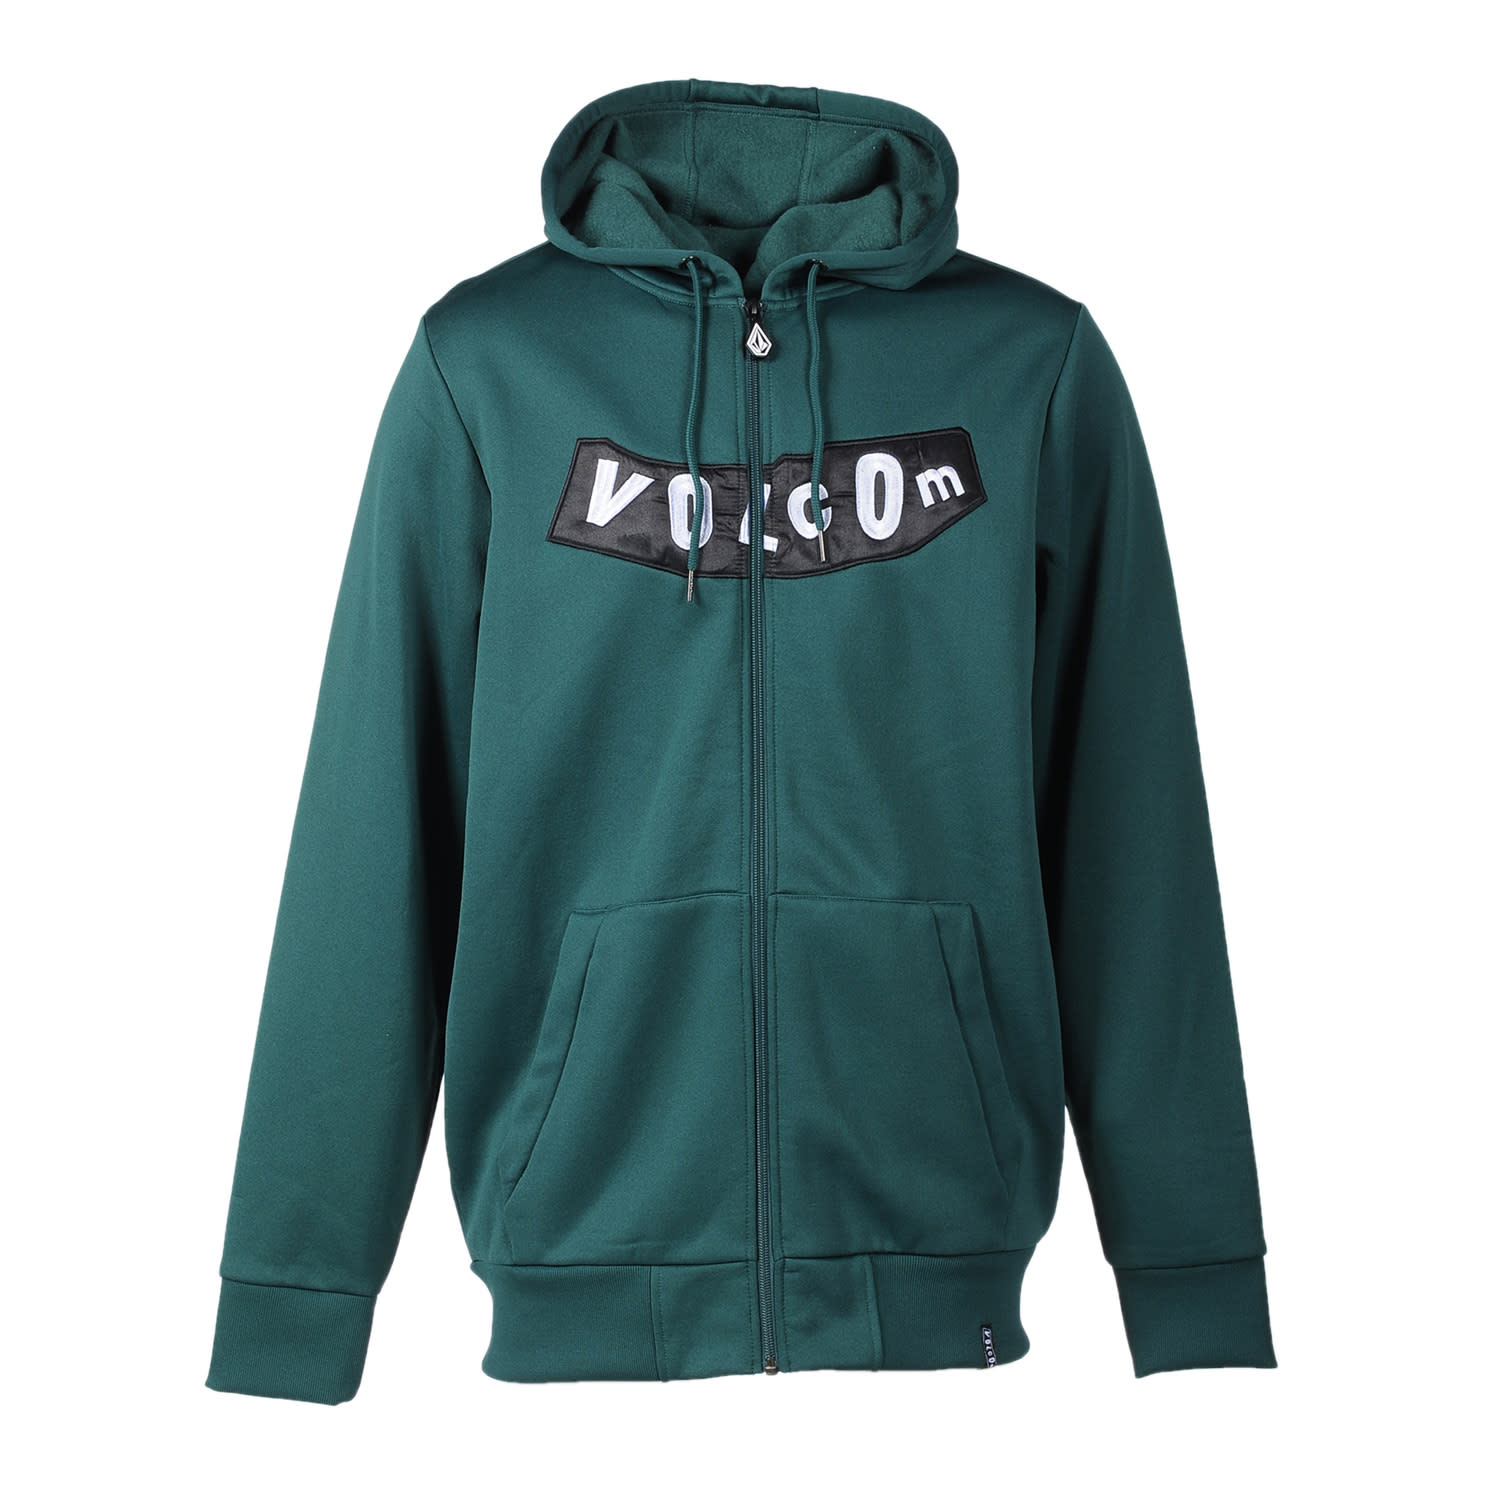 Shop for Volcom Pistol Hydro Fleece Hoodie Dark Green - Men's